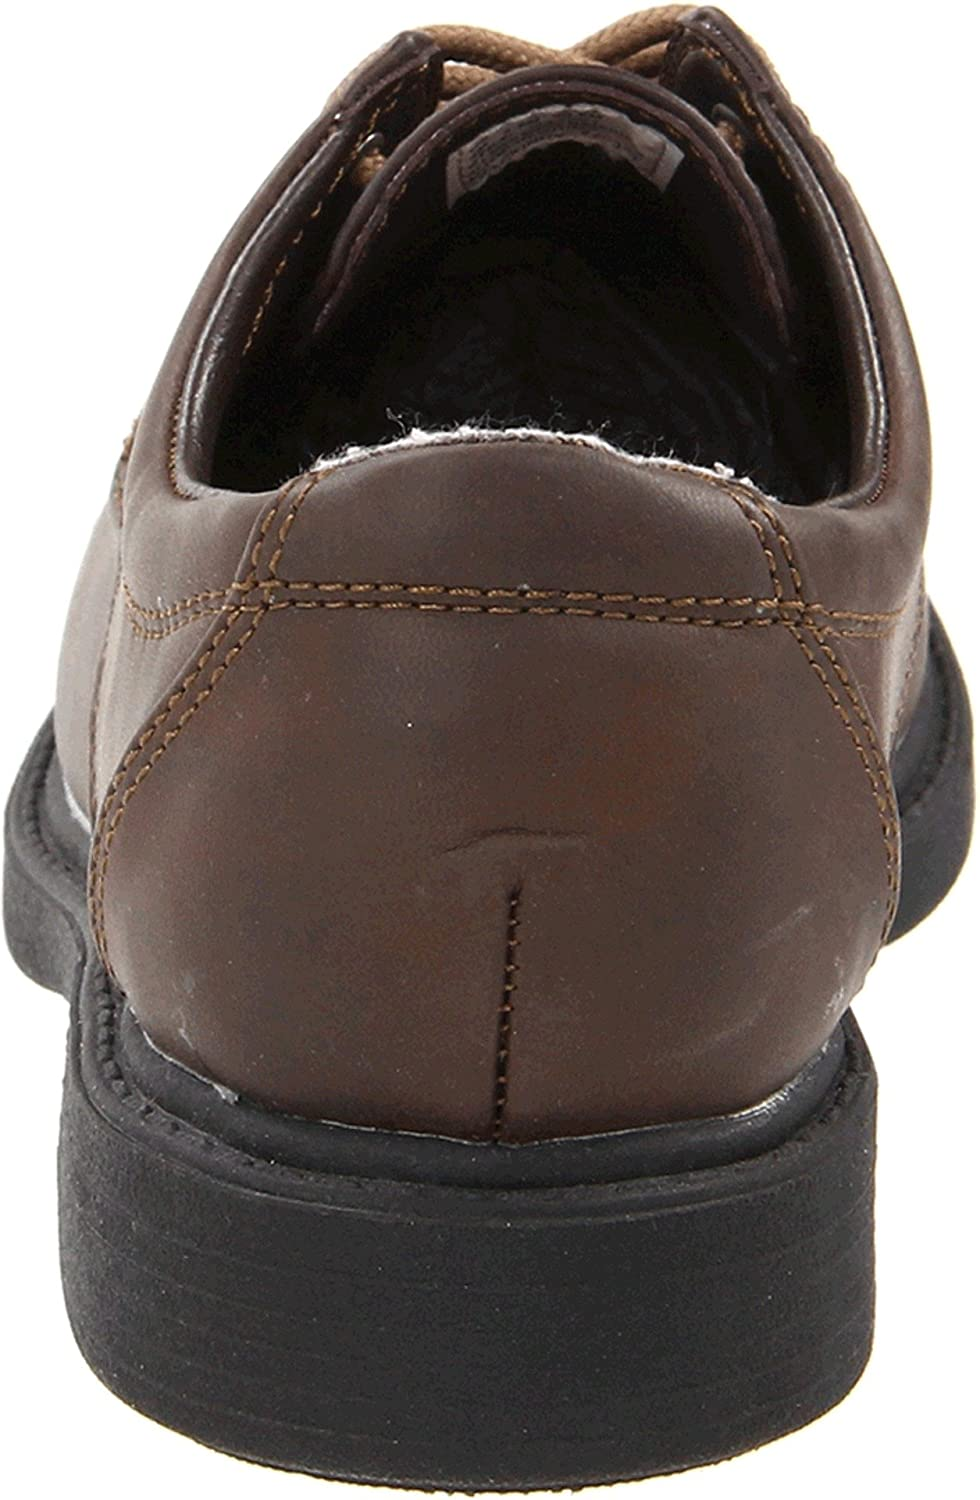 Hush Puppies Dylan Oxford Hush Puppies Kids Footwear Q83002//Q33002 Toddler//Little Kid